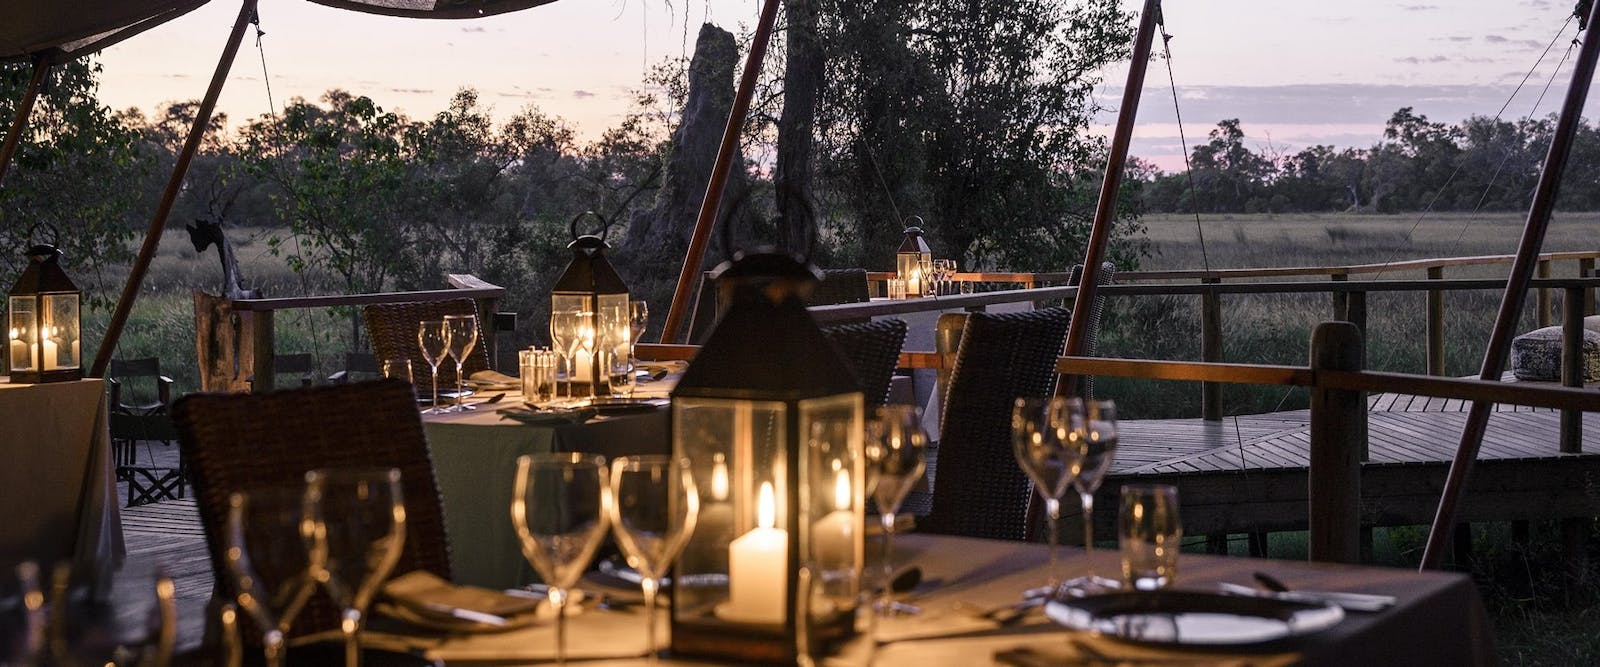 Restaurant at Sanctuary Stanley's Camp, Botswana